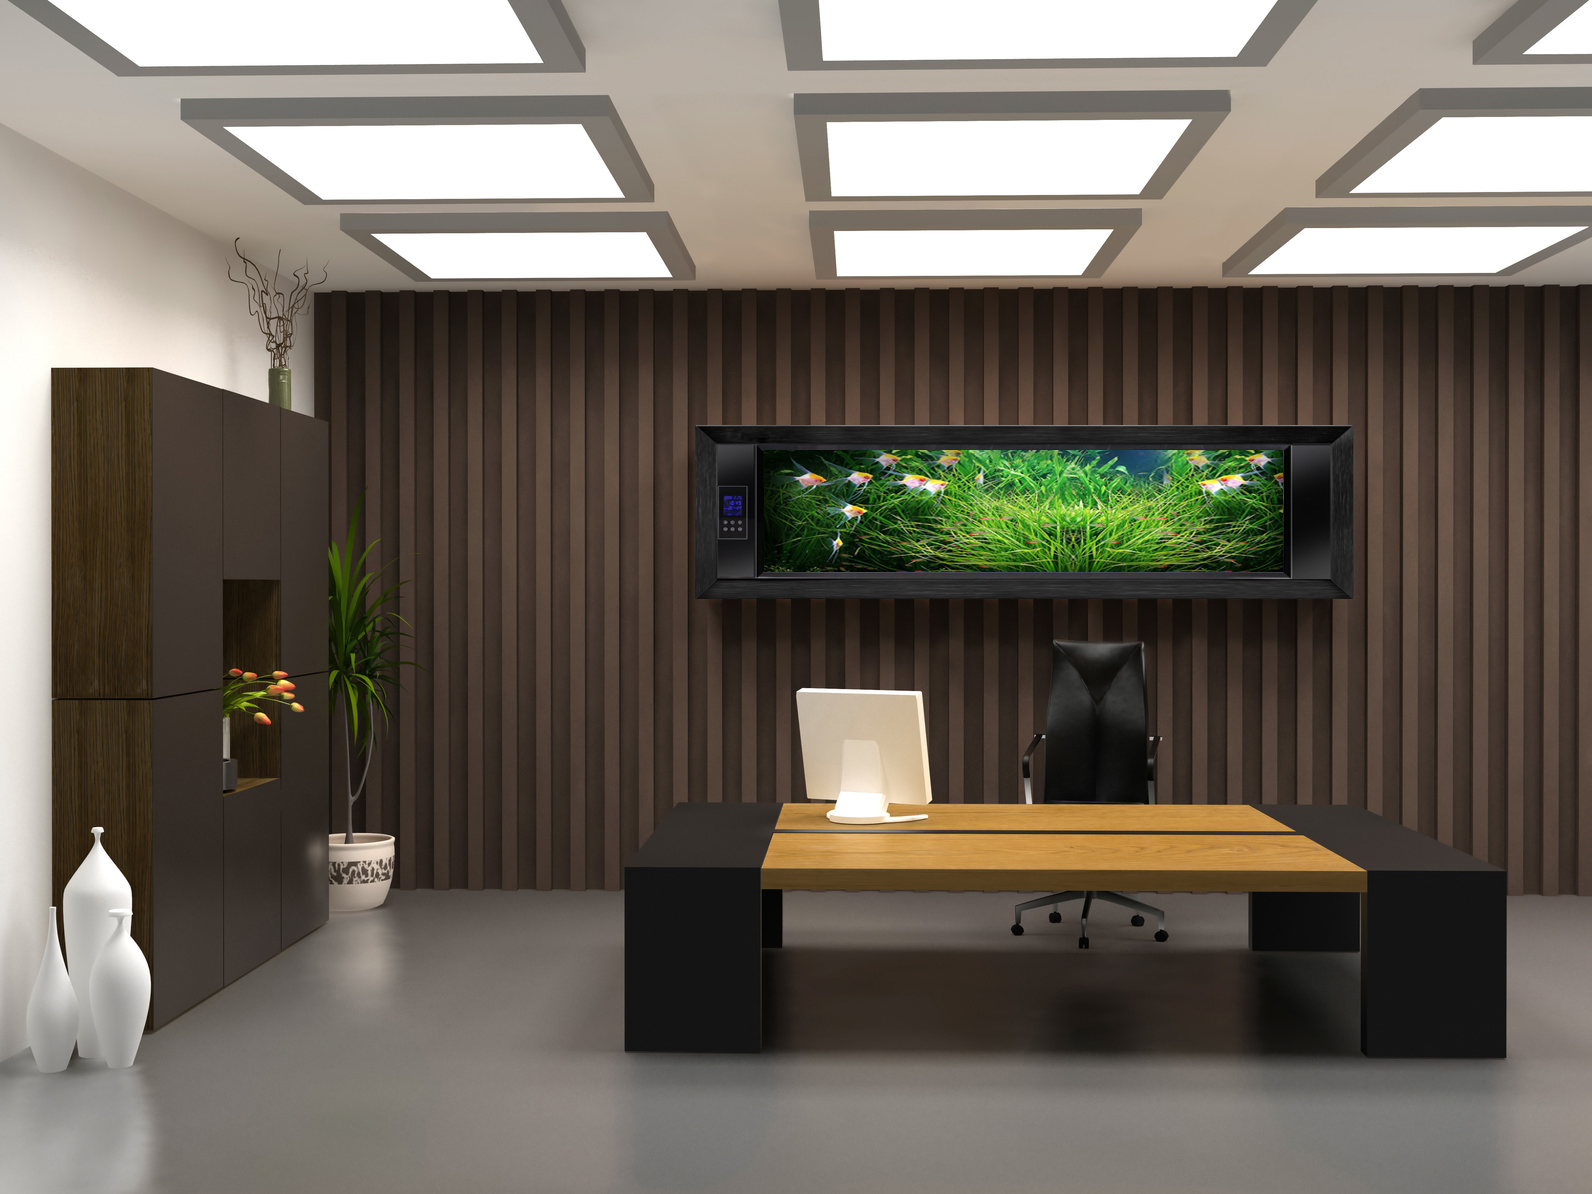 Elegant ceo office design bellisima for Office interior design gallery